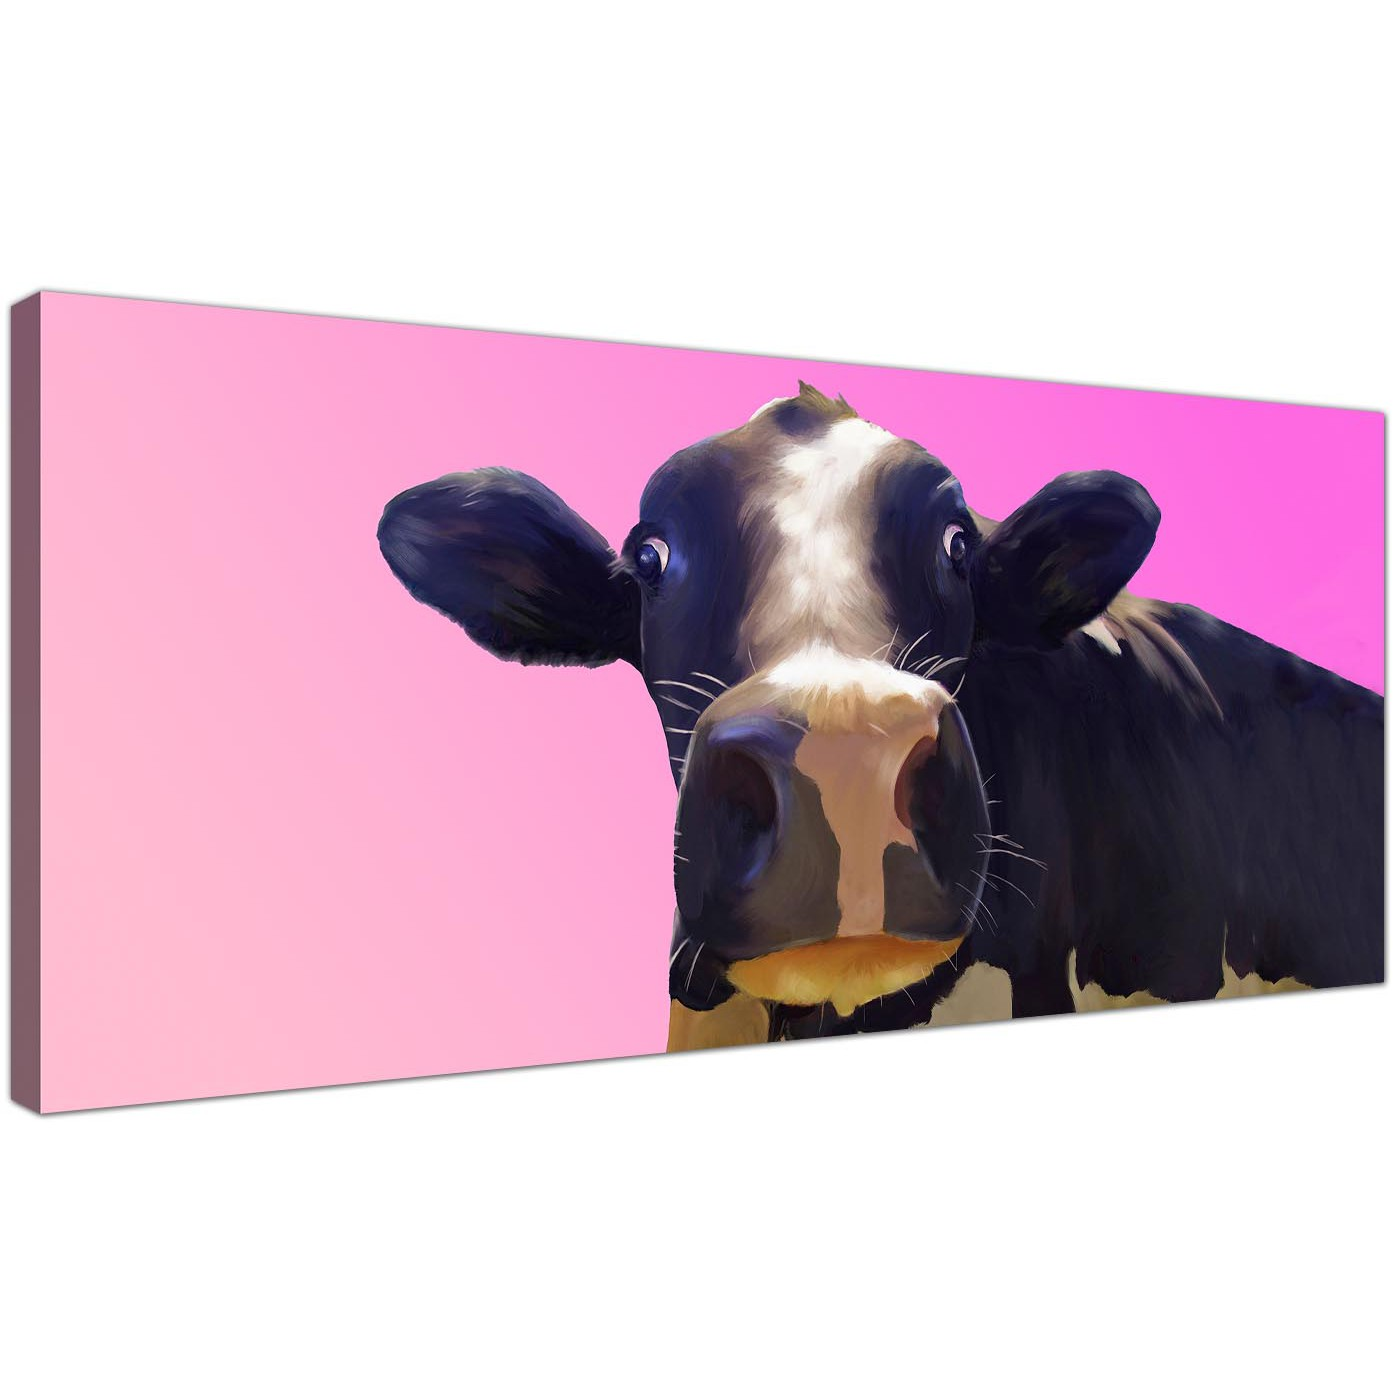 Display Gallery Item 1; Trendy Canvas Prints Pink Panoramic 1151 Display  Gallery Item 2 ...